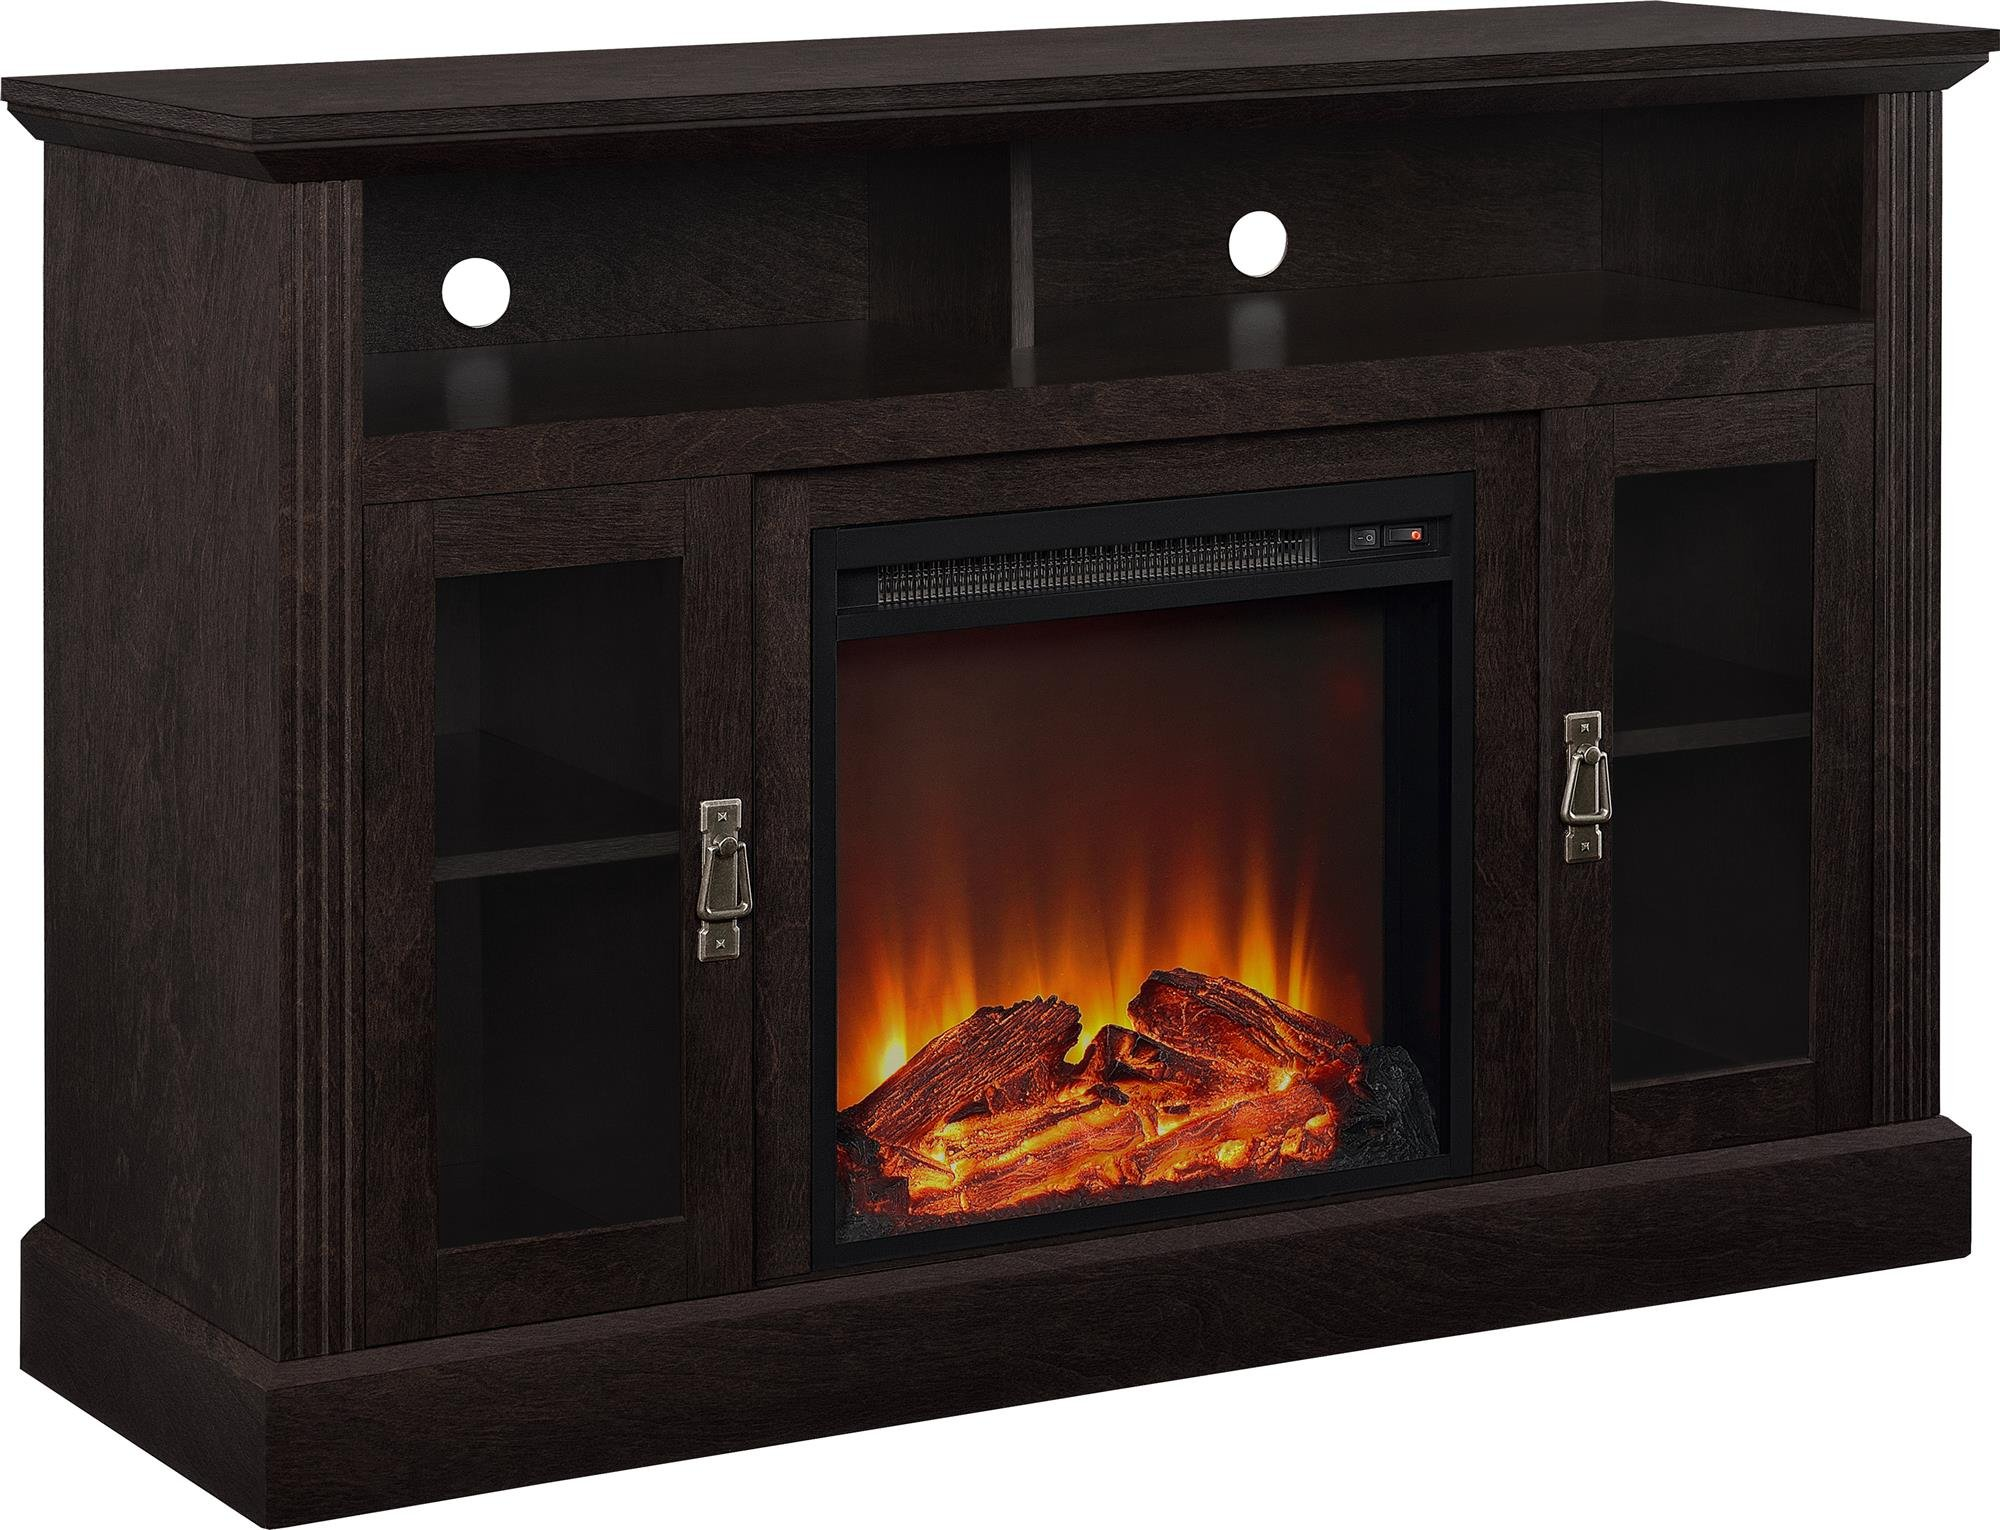 Ameriwood Home Chicago Electric Fireplace TV Console for TVs up to a 50'', Espresso by Ameriwood Home (Image #1)